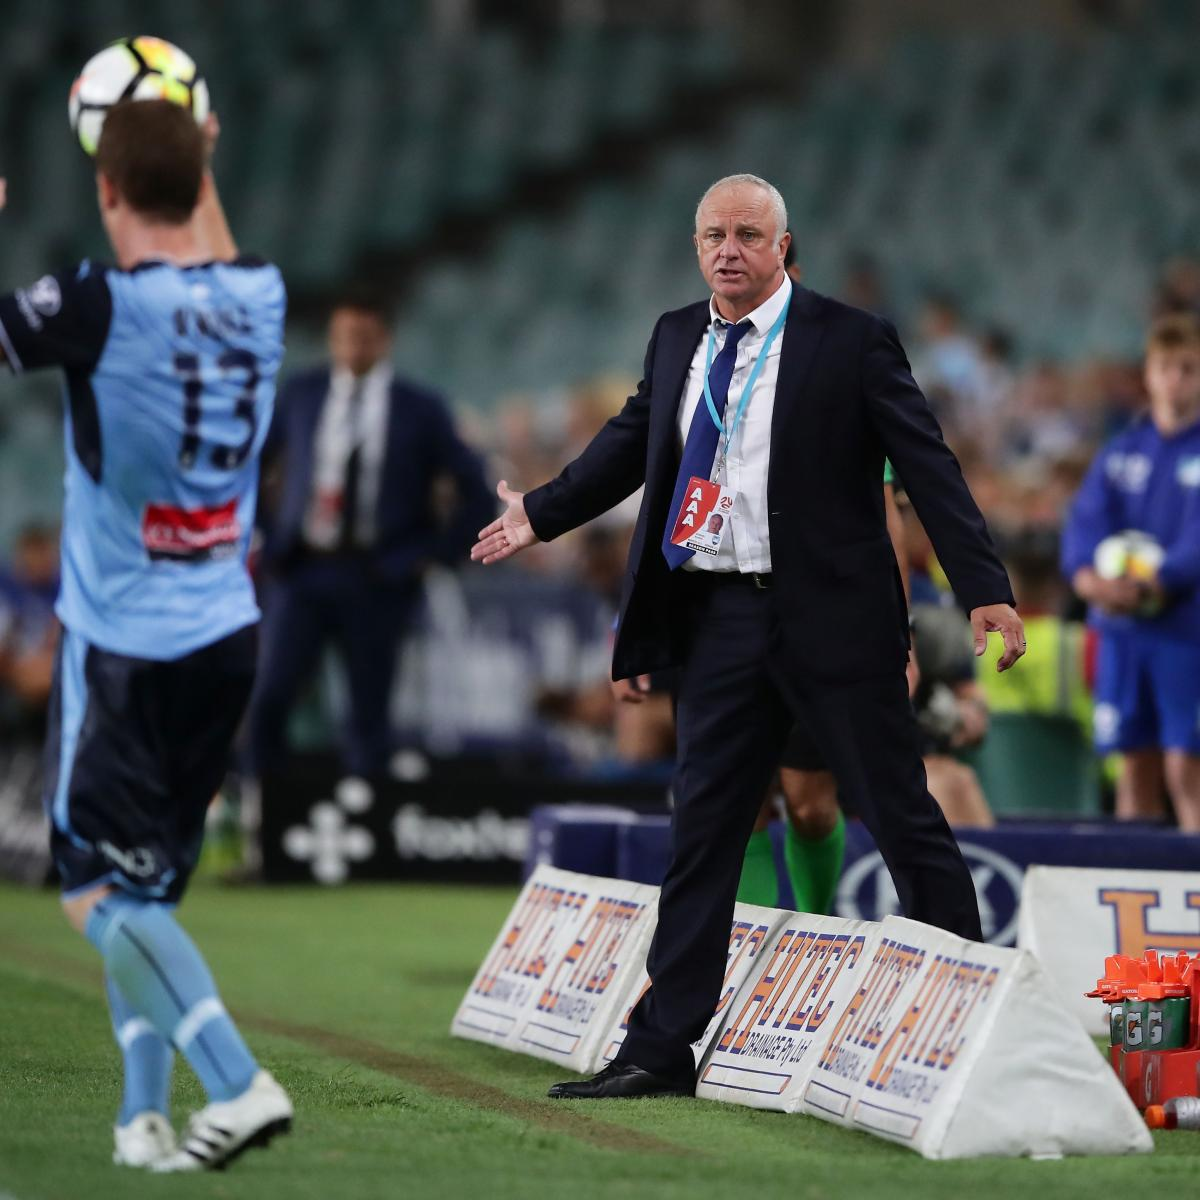 A-League Round 19 Betting Preview: Odds, Trends and Analysis for Week's Matches